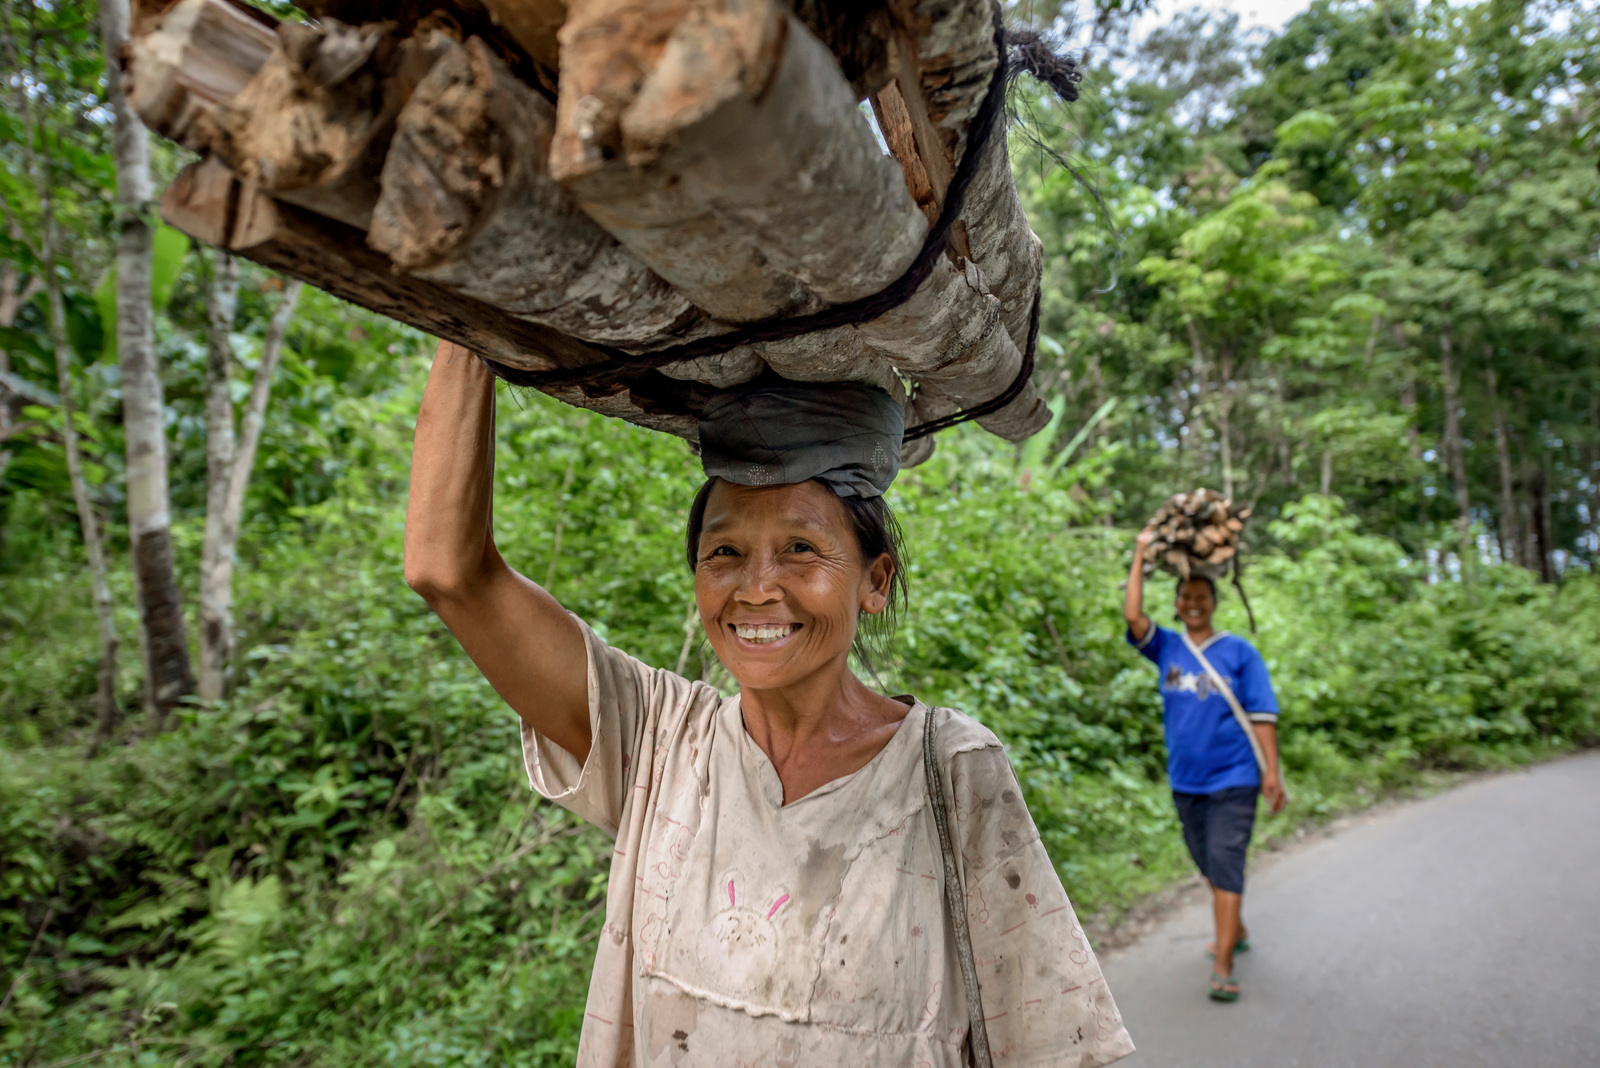 Women in Aek Banir village near Batang Gadis National Park, Mandailing Natal, North Sumatra, carry home firewood from the forest on their heads